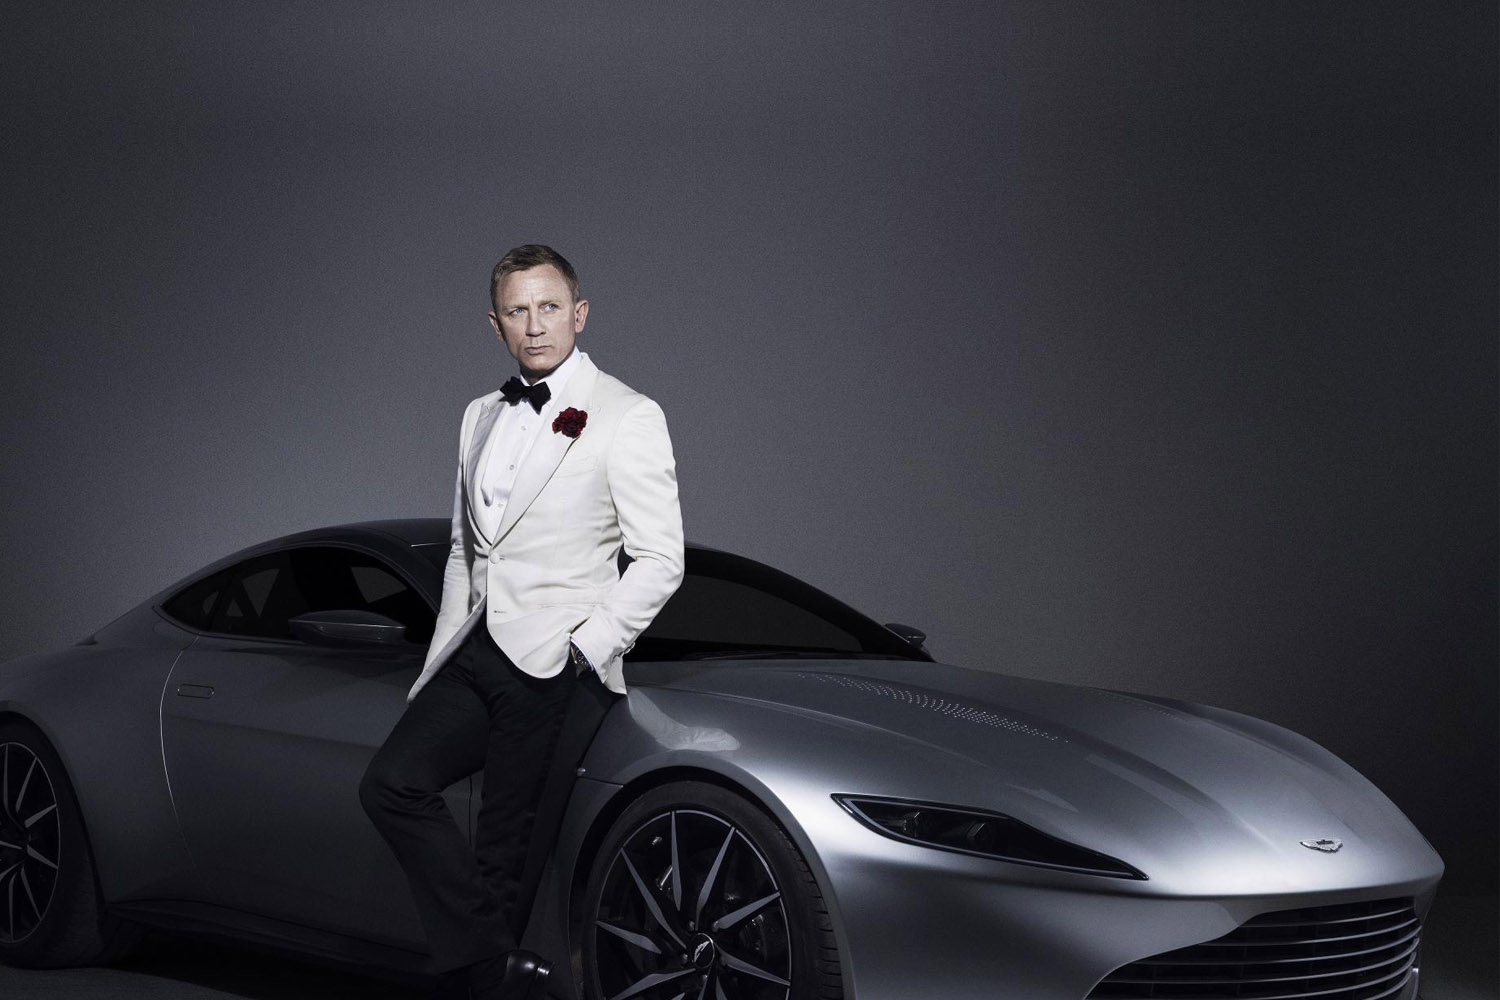 Christie S James Bond Spectre Auction Including A Prototype Of Omega Seamaster 300 Spectre Worn By Craig And One Of 10 Aston Martin Db10 Monochrome Watches